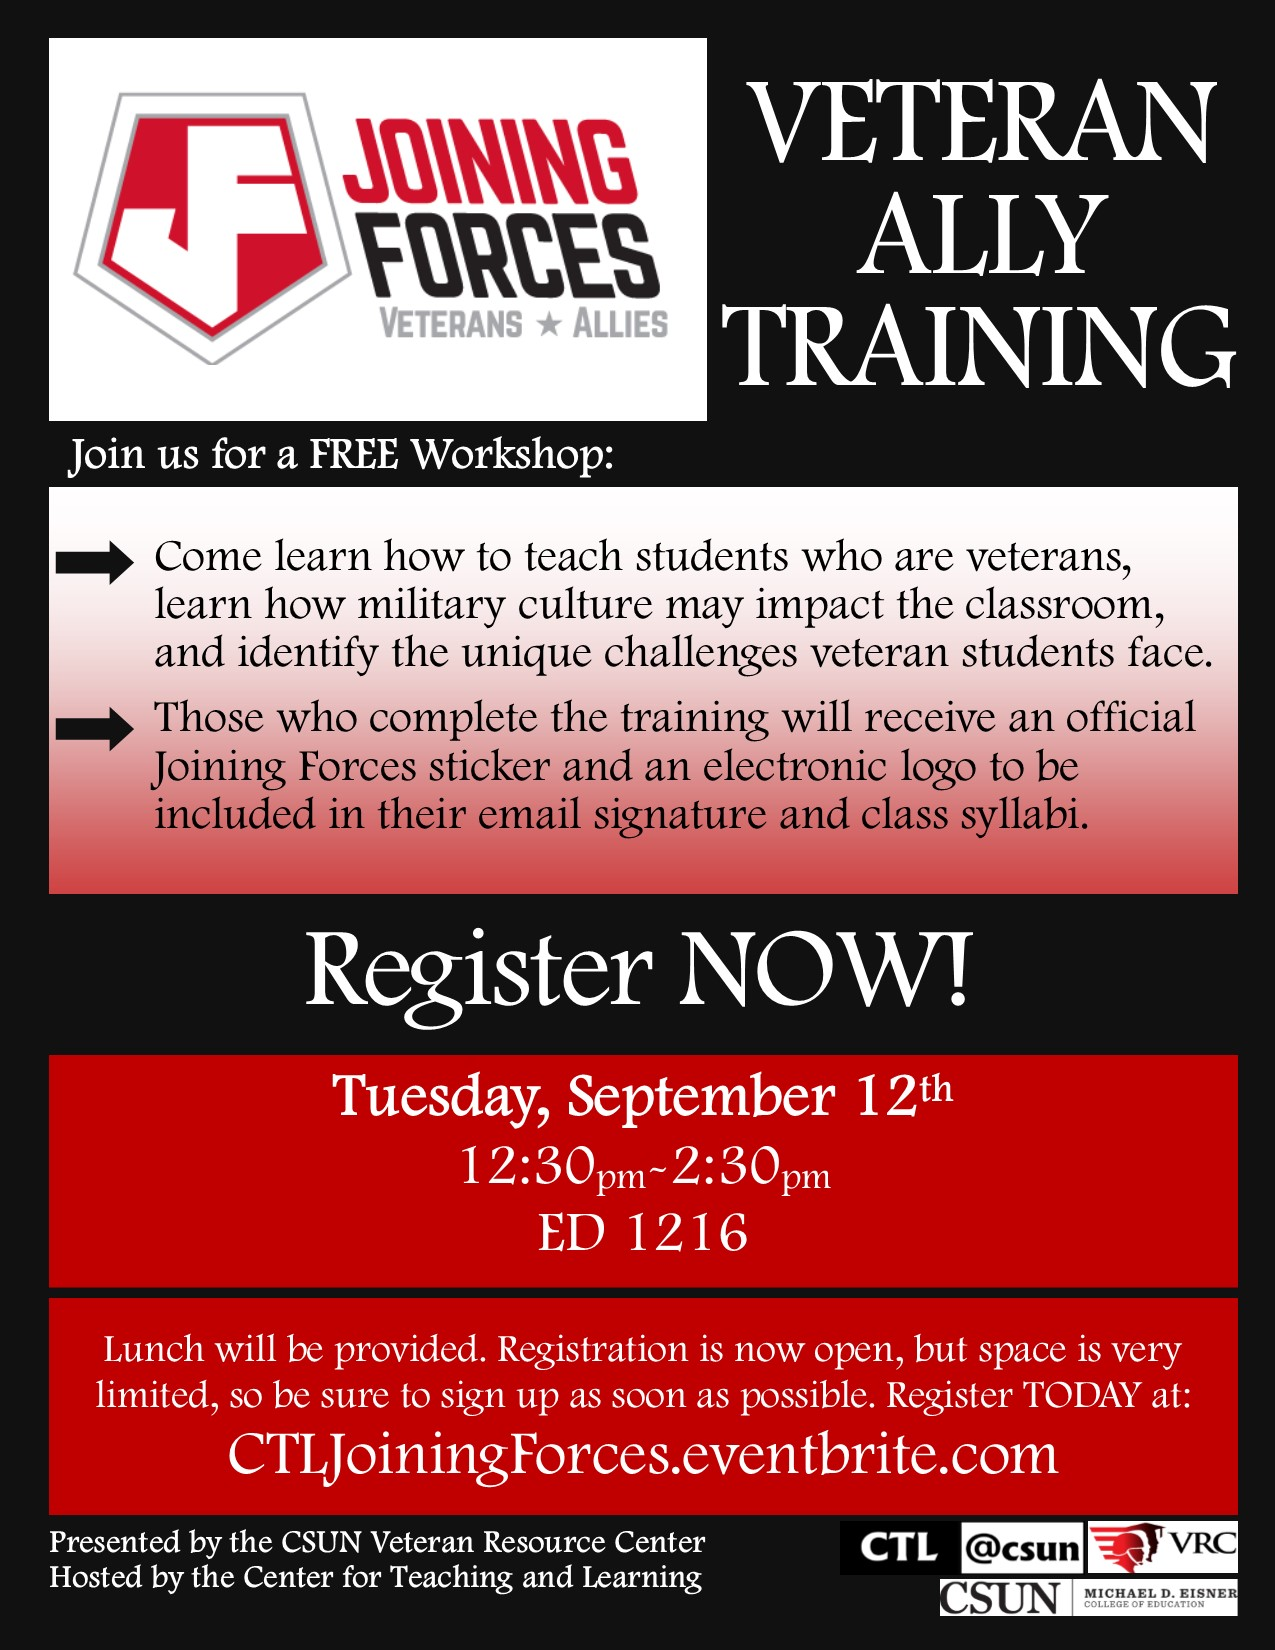 Join us for a FREE workshop: Come learn how to teach students who are veterans, learn how military culture may impact the classroom, and identify the unique challenges veteran students face. Those who complete the training will receive an official Joining Forces sticker and an electronic logo to be included in their email signature and class syllabi. Tuesday, September 12th. 12:30pm to 2:30pm. ED1216. Lunch will be provided. Registration is limited, so sign up as soon as possible. Presented by the CSUN Veteran Resource Center. Hosted by the Center for Teaching and Learning.